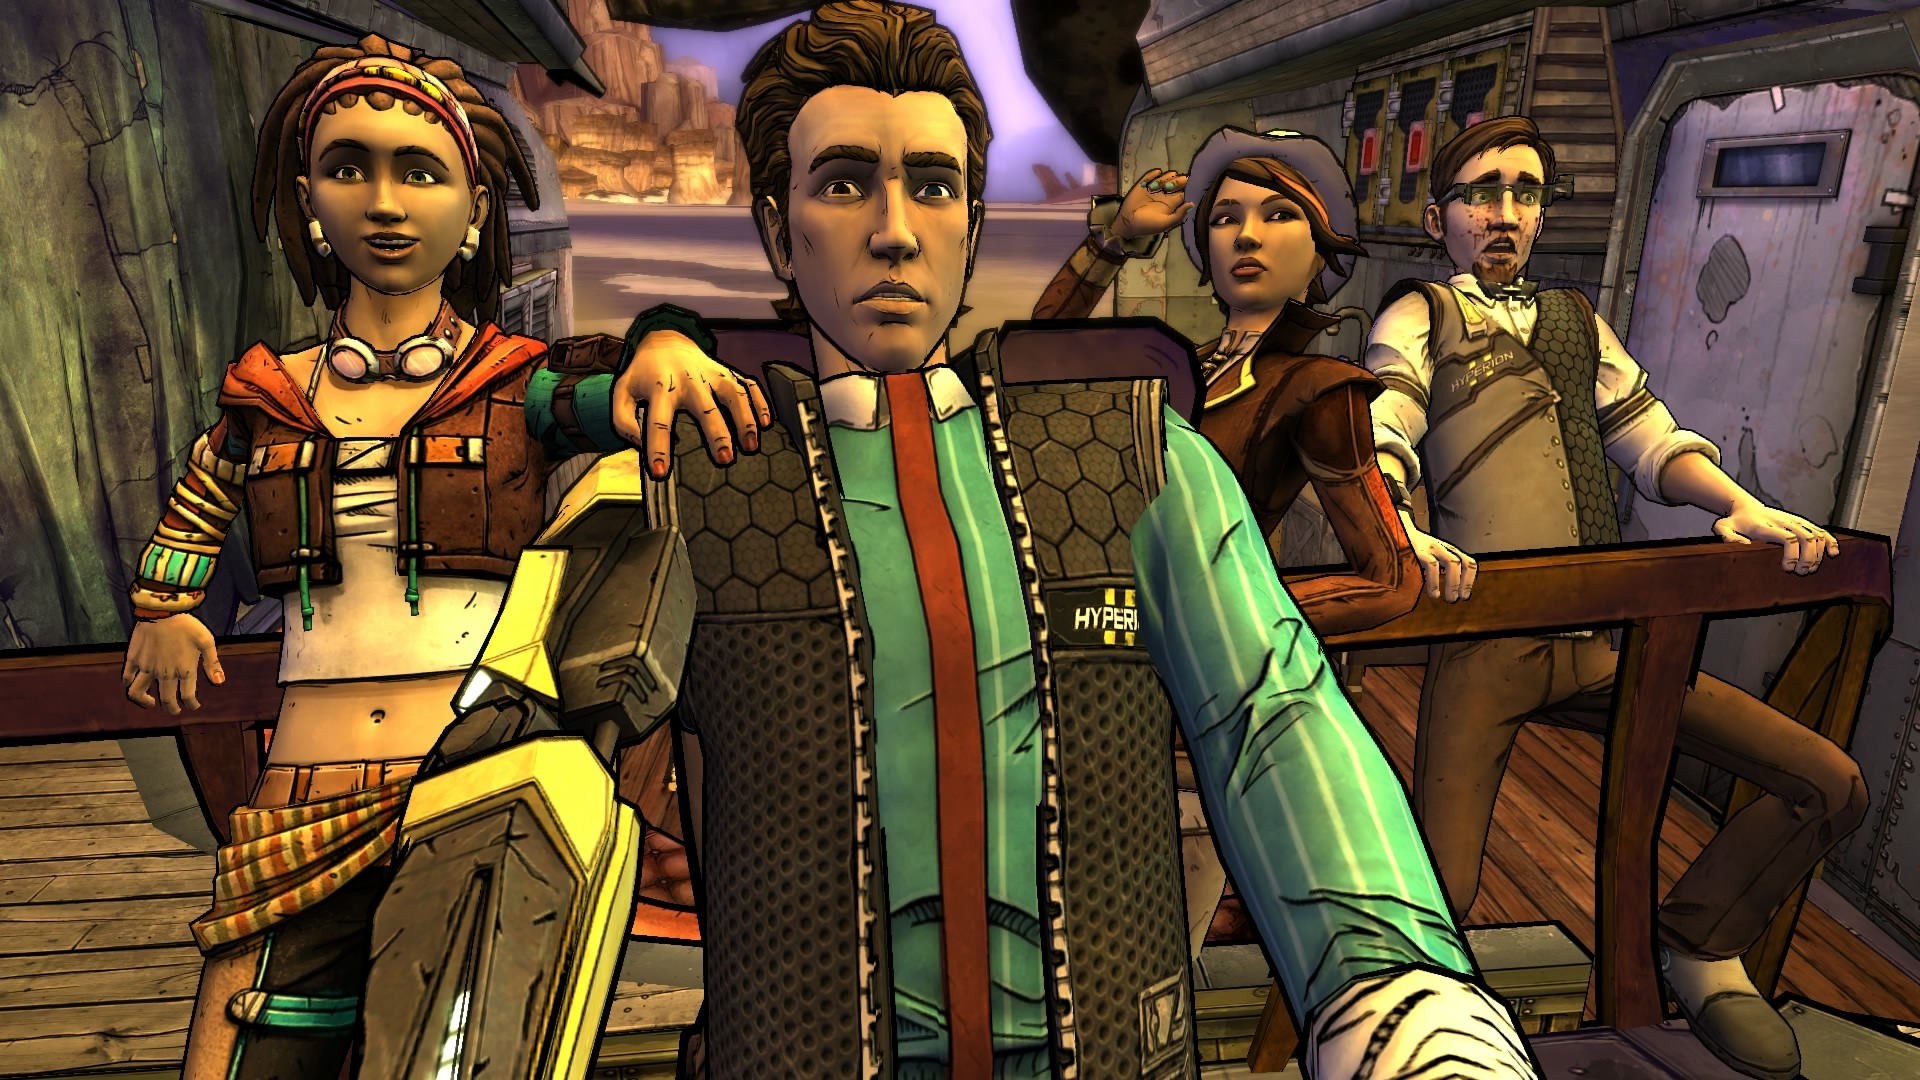 tales from the borderlands final episode date revealed player theory